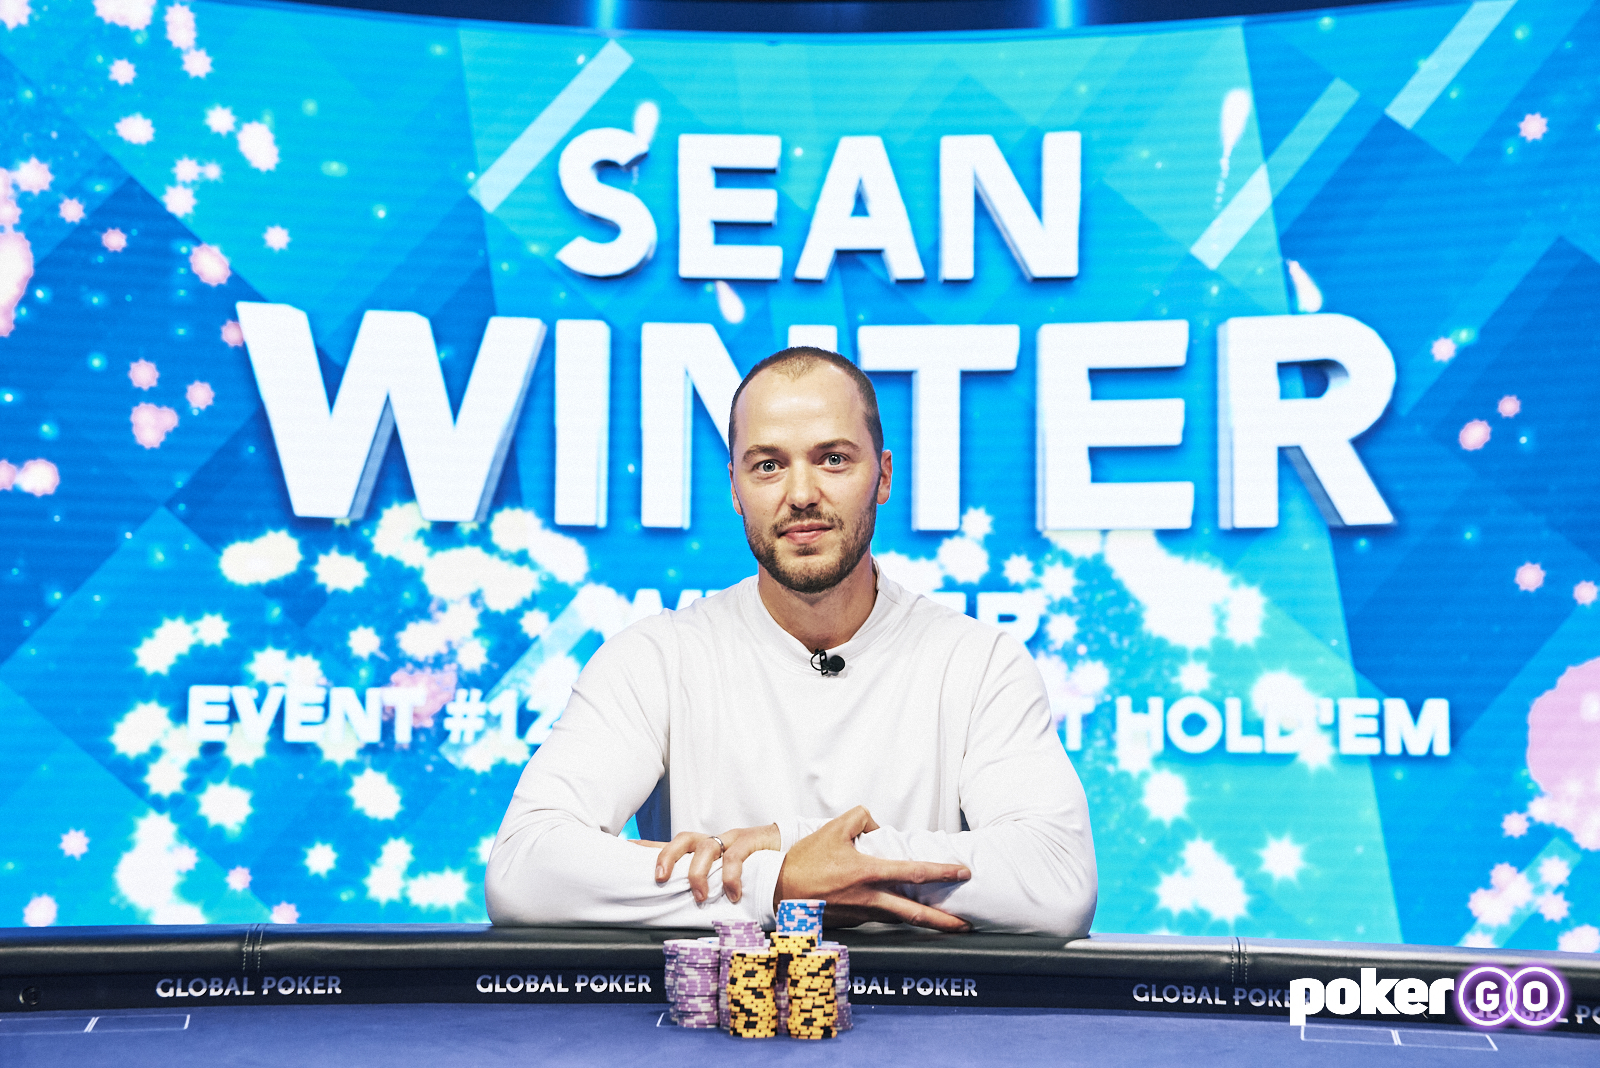 Sean Winter Wins U.S. Poker Open Event #12: $50,000 No Limit Hold'em for $756,000